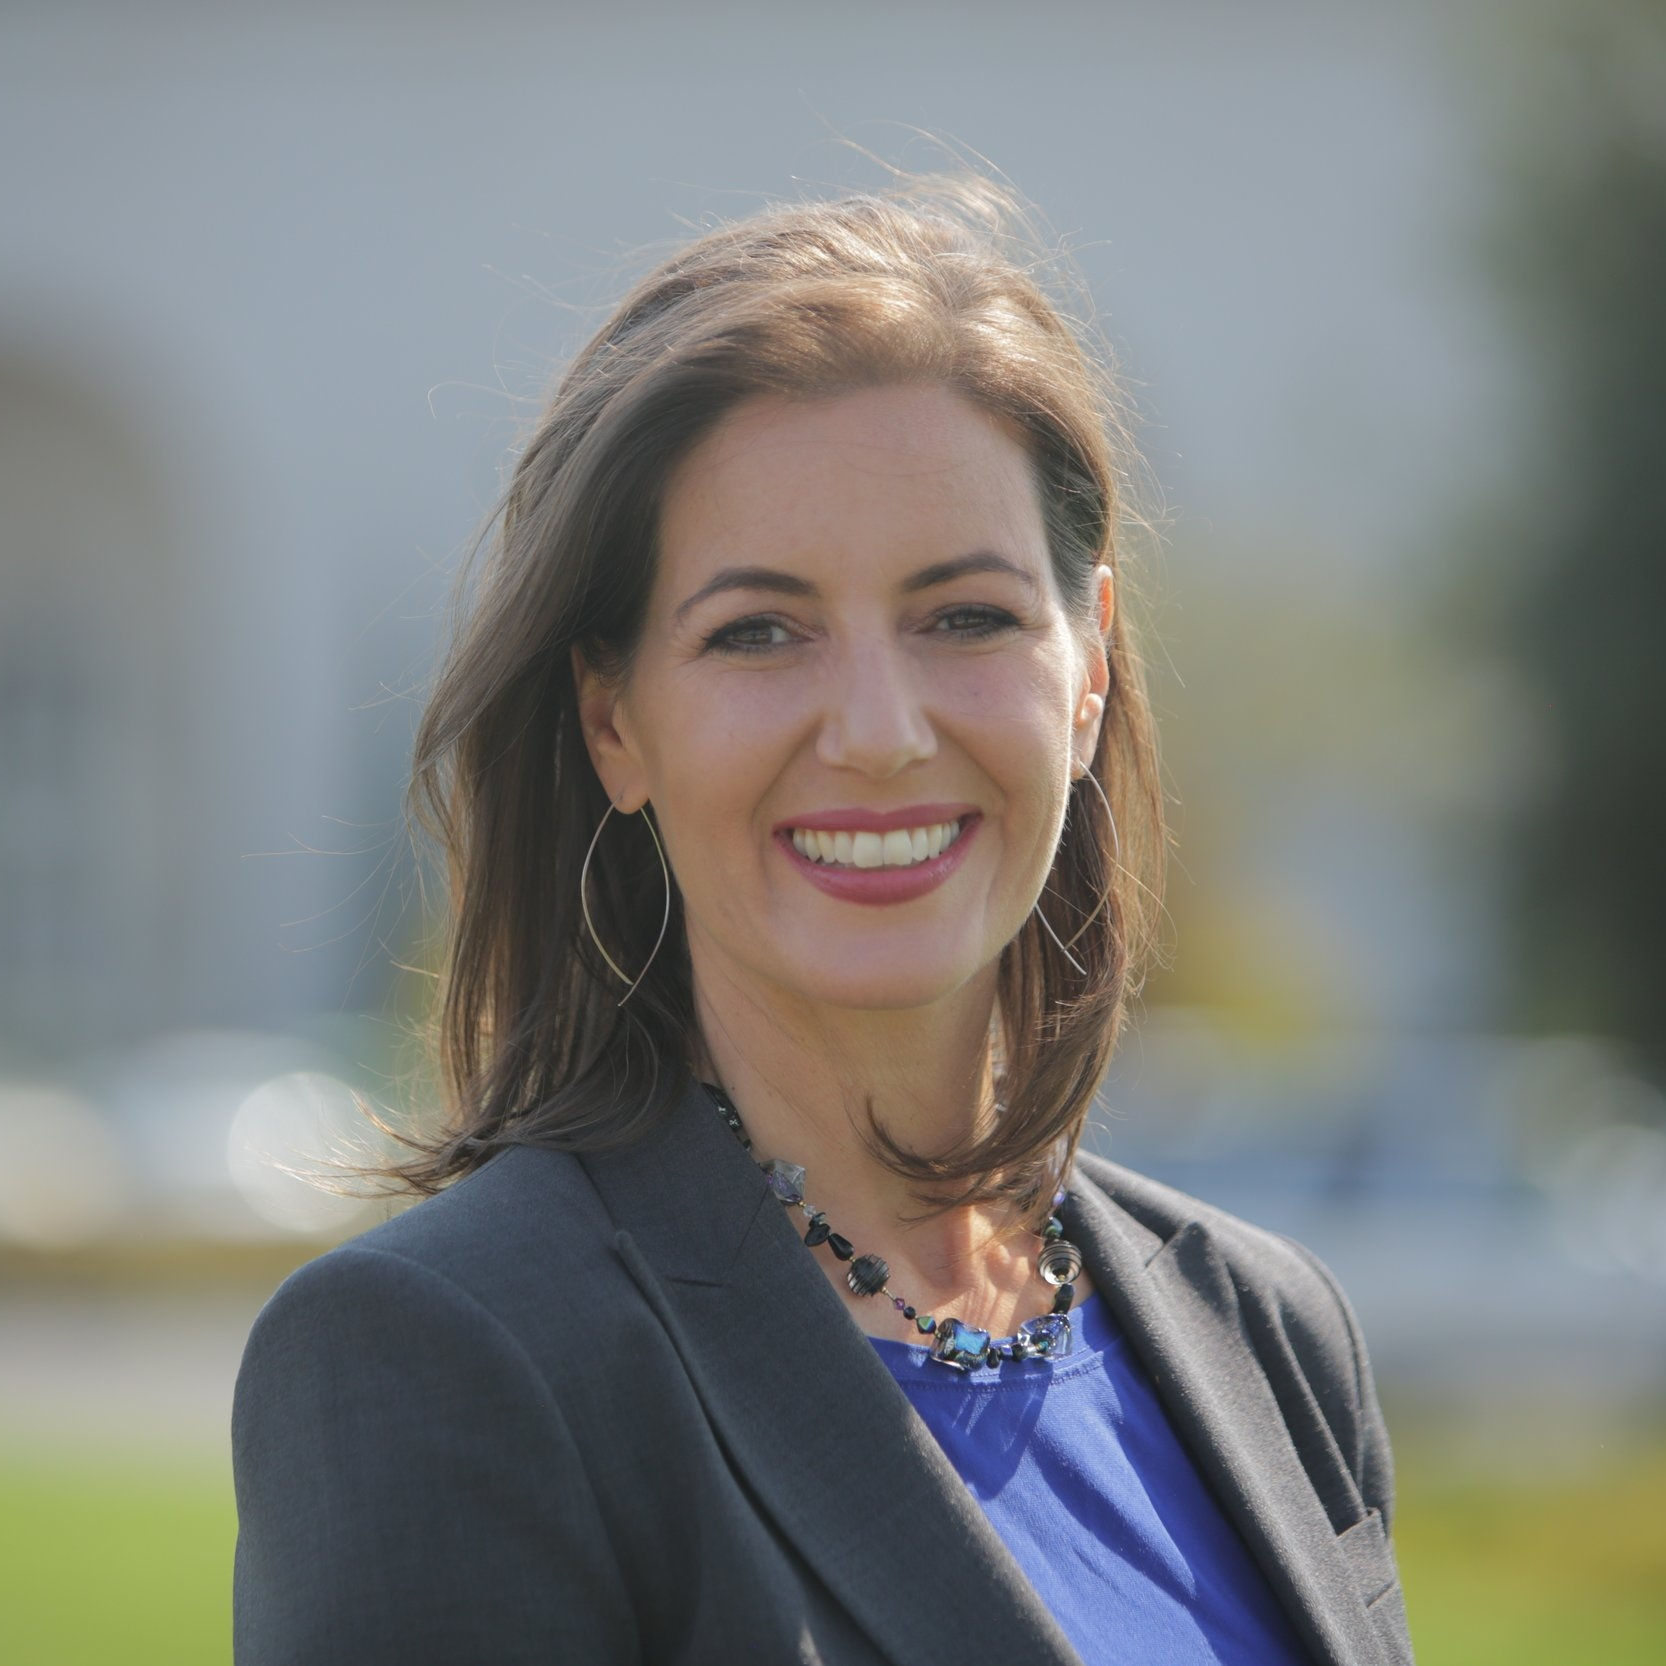 Mayor Libby Schaaf , Mayor, City of Oakland